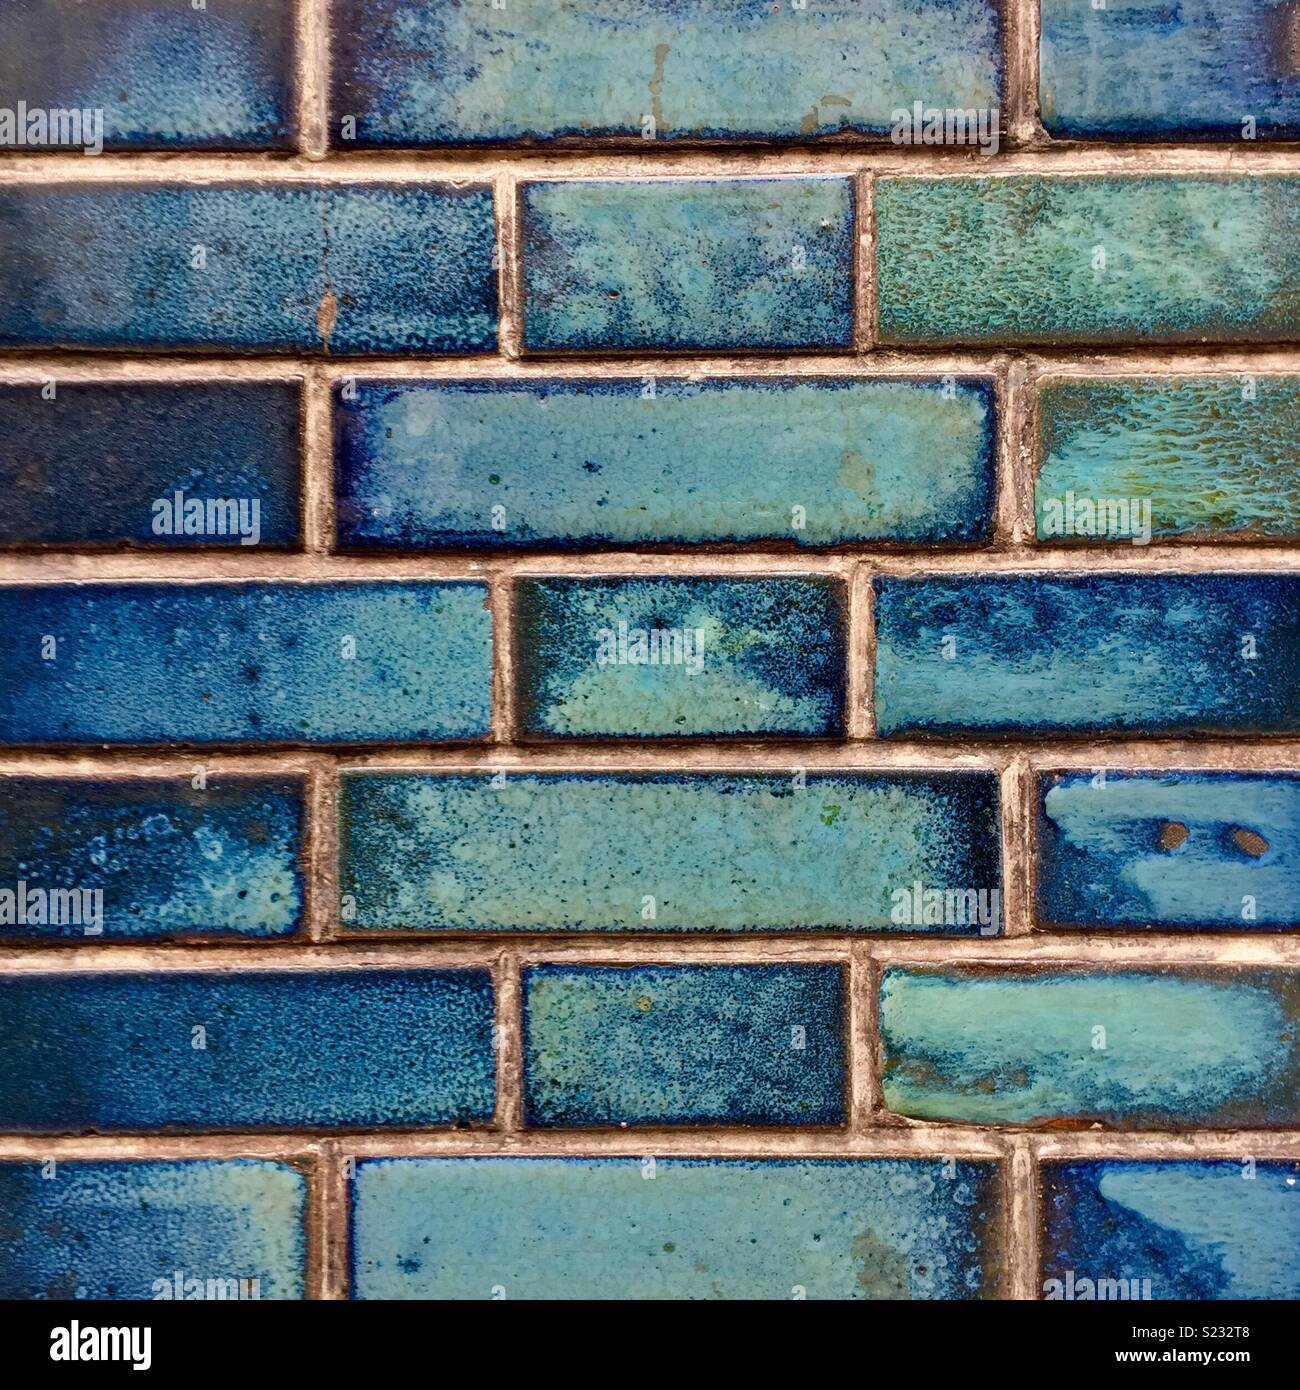 Blue ceramic tiles on wall in Paris Stock Photo: 311084040 - Alamy